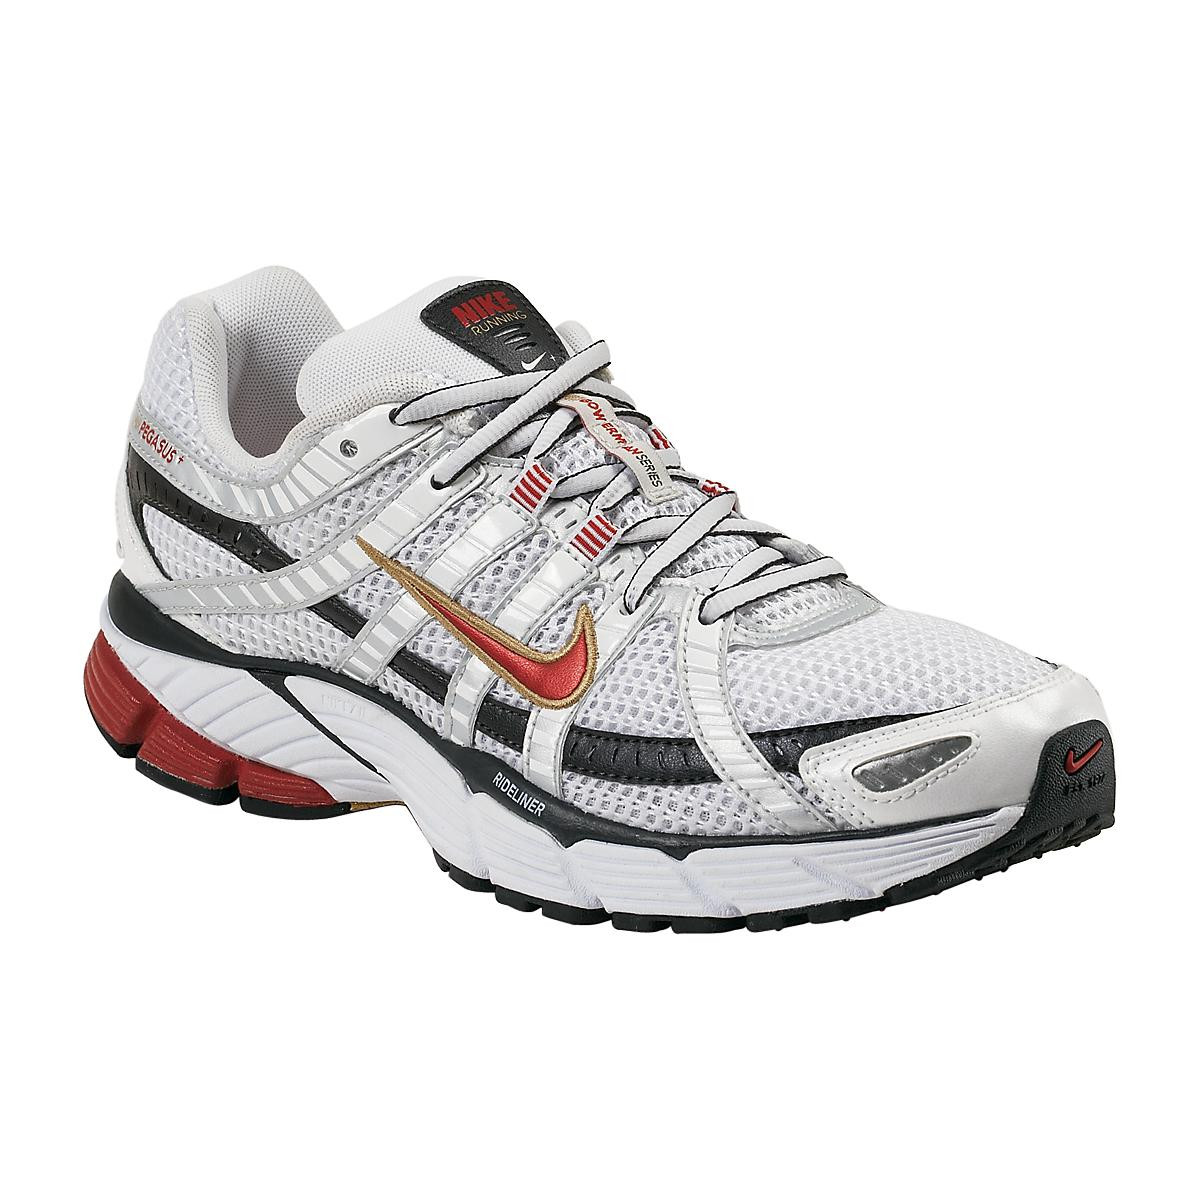 Mens Nike Running Shoes  3f6ddc5dcb2a